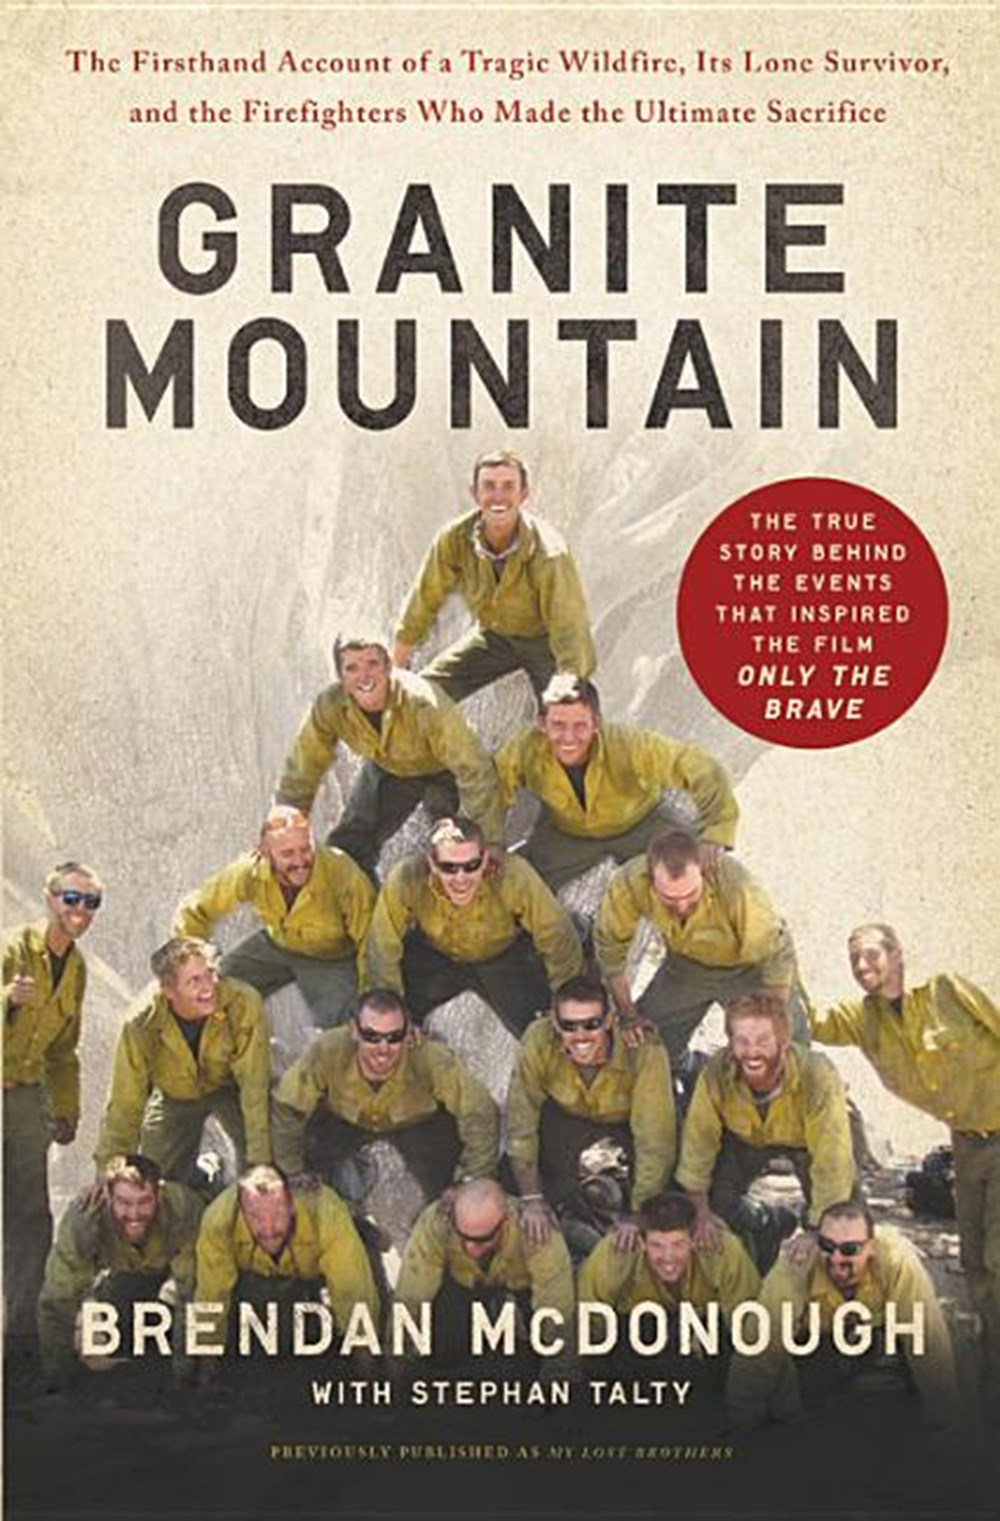 Granite Mountain The Firsthand Account of a Tragic Wildfire, Its Lone Survivor, and the Firefighters